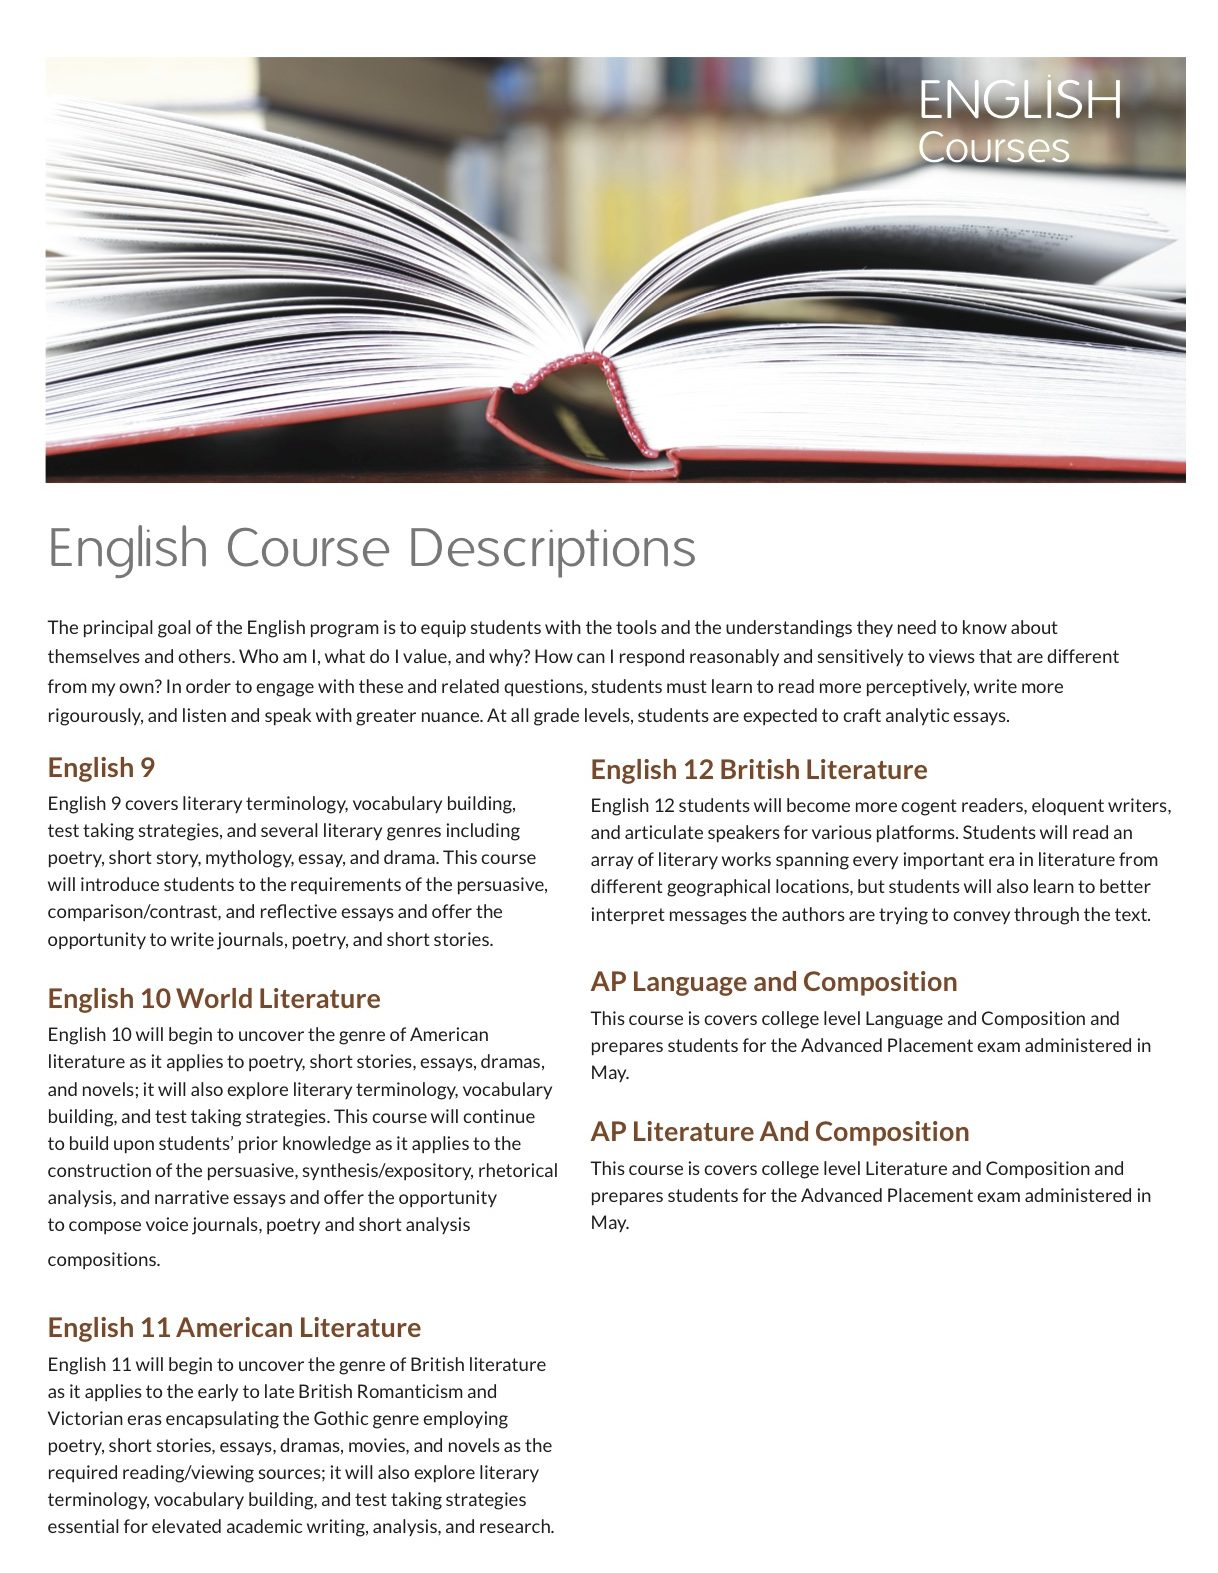 ap english language and composition sample essays